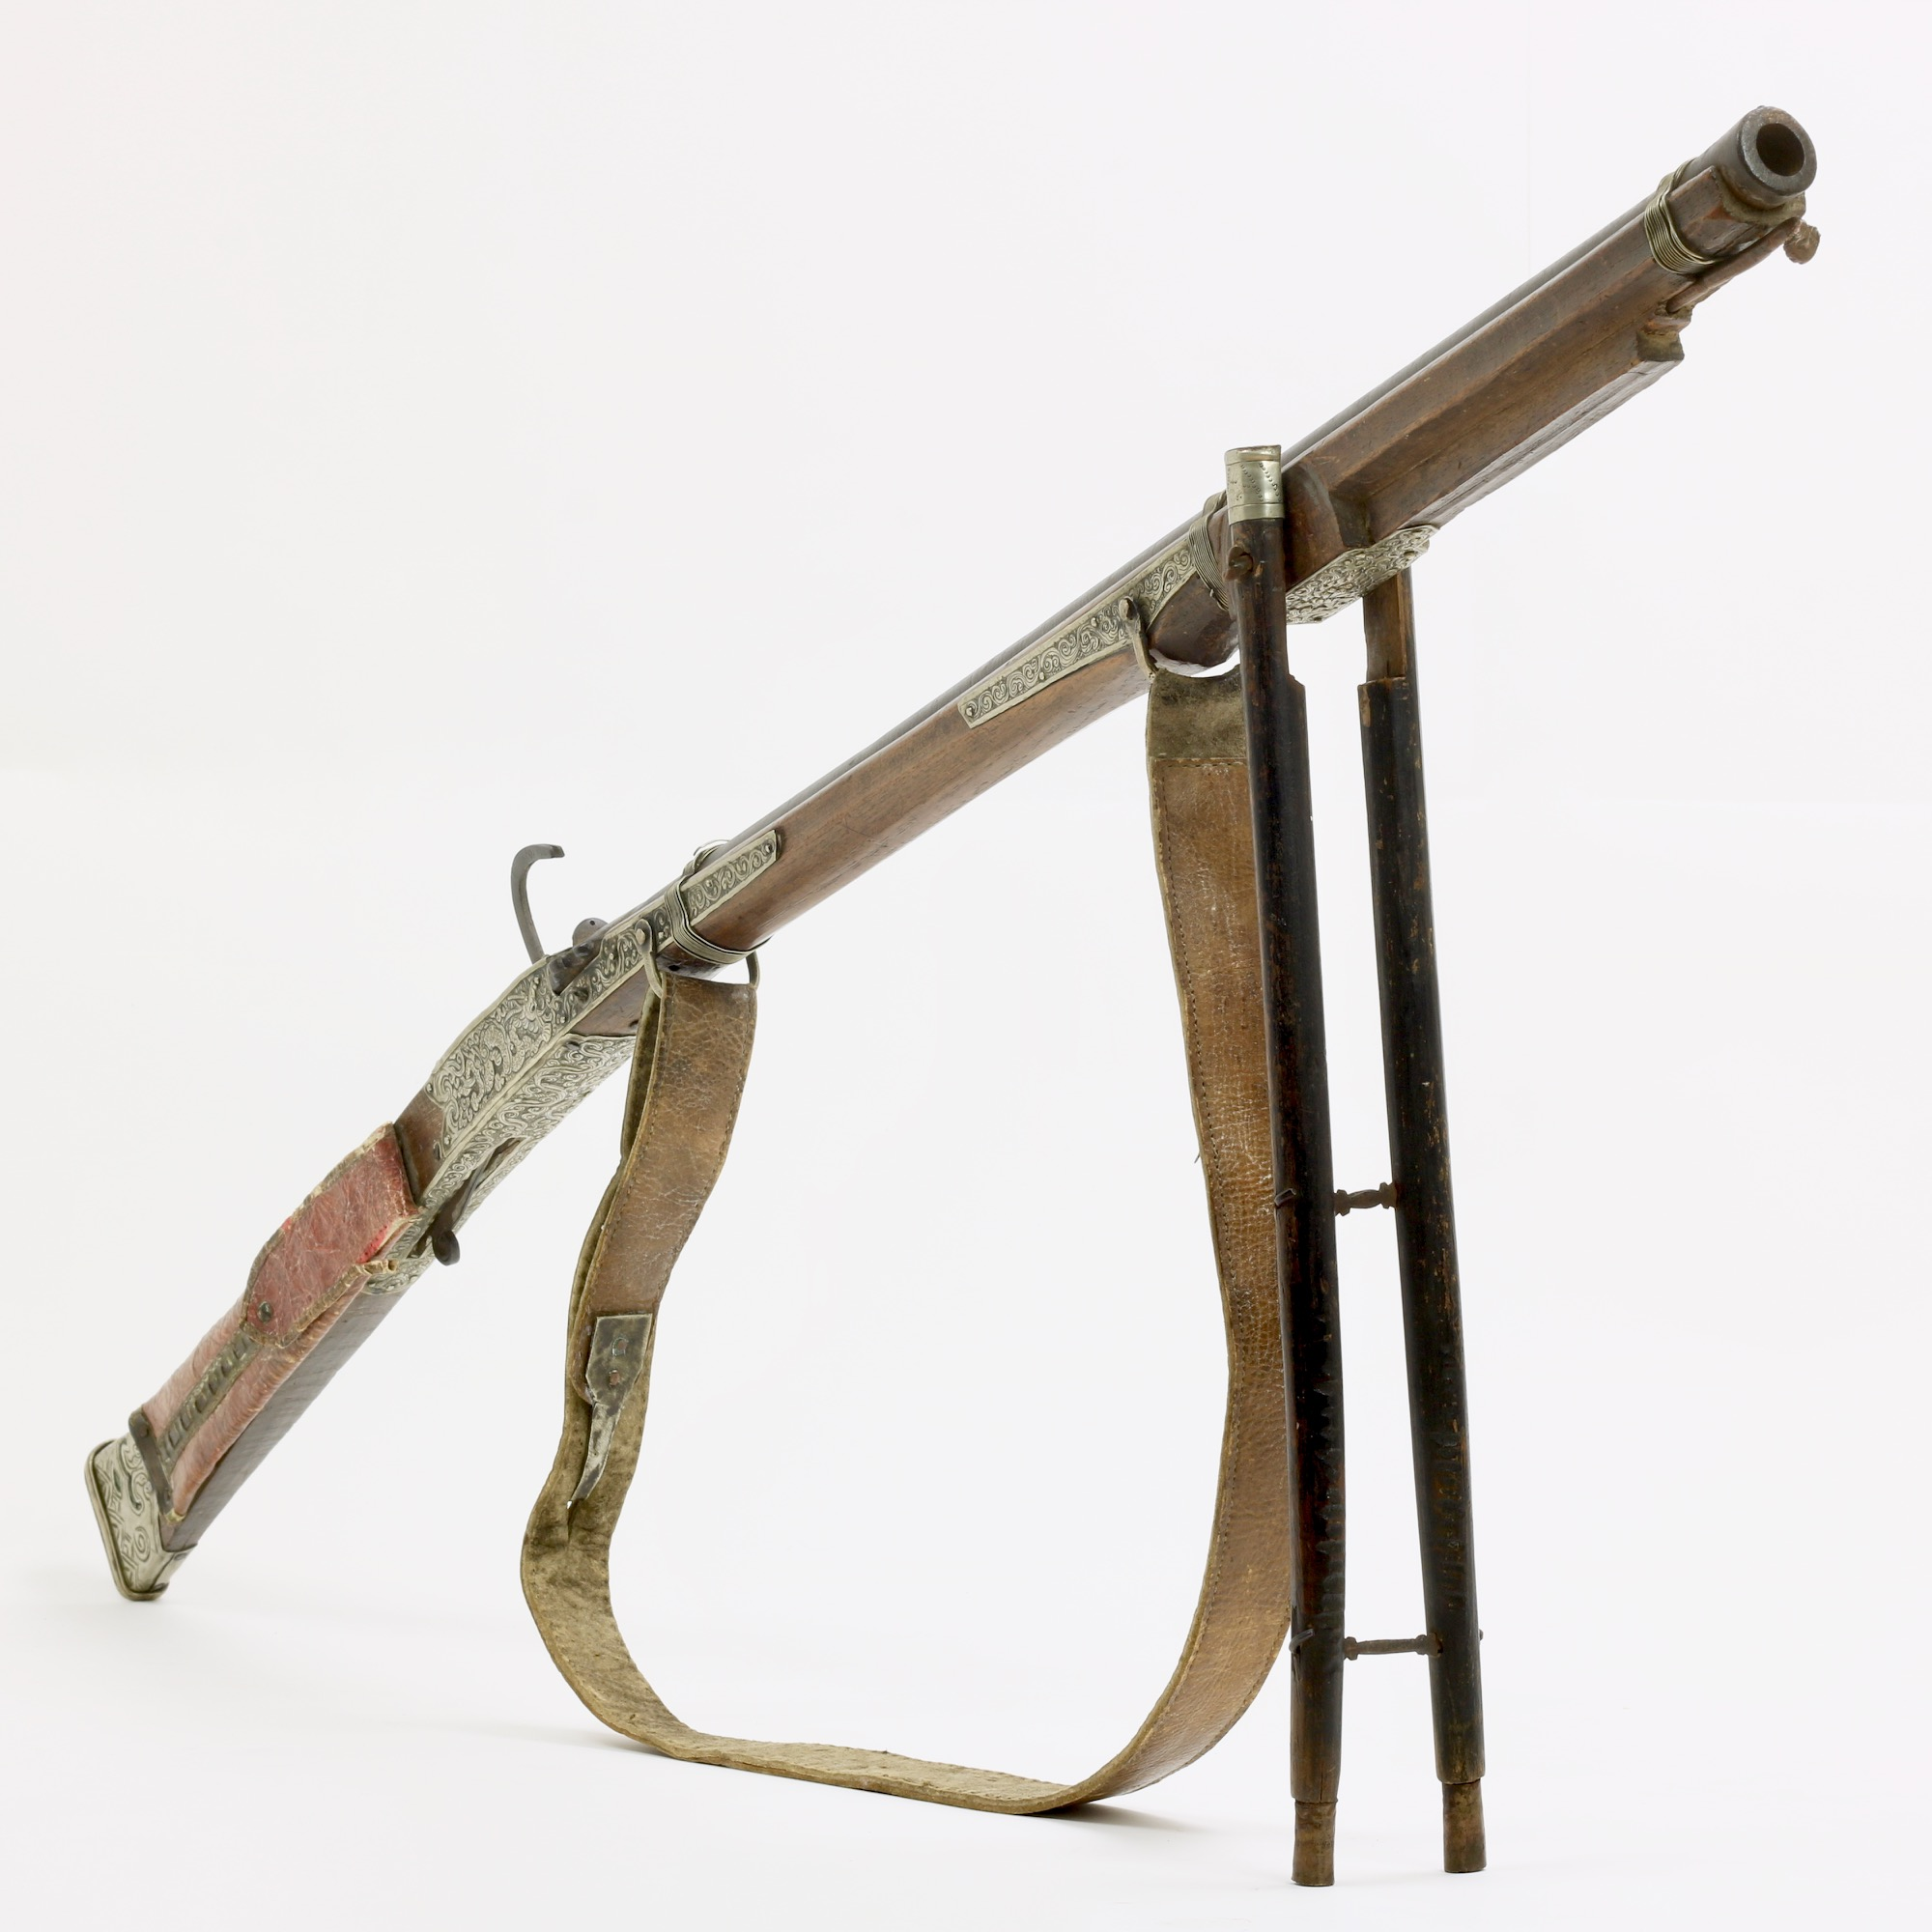 An antique Tibetan matchlock musket. www.mandarinmansion.com